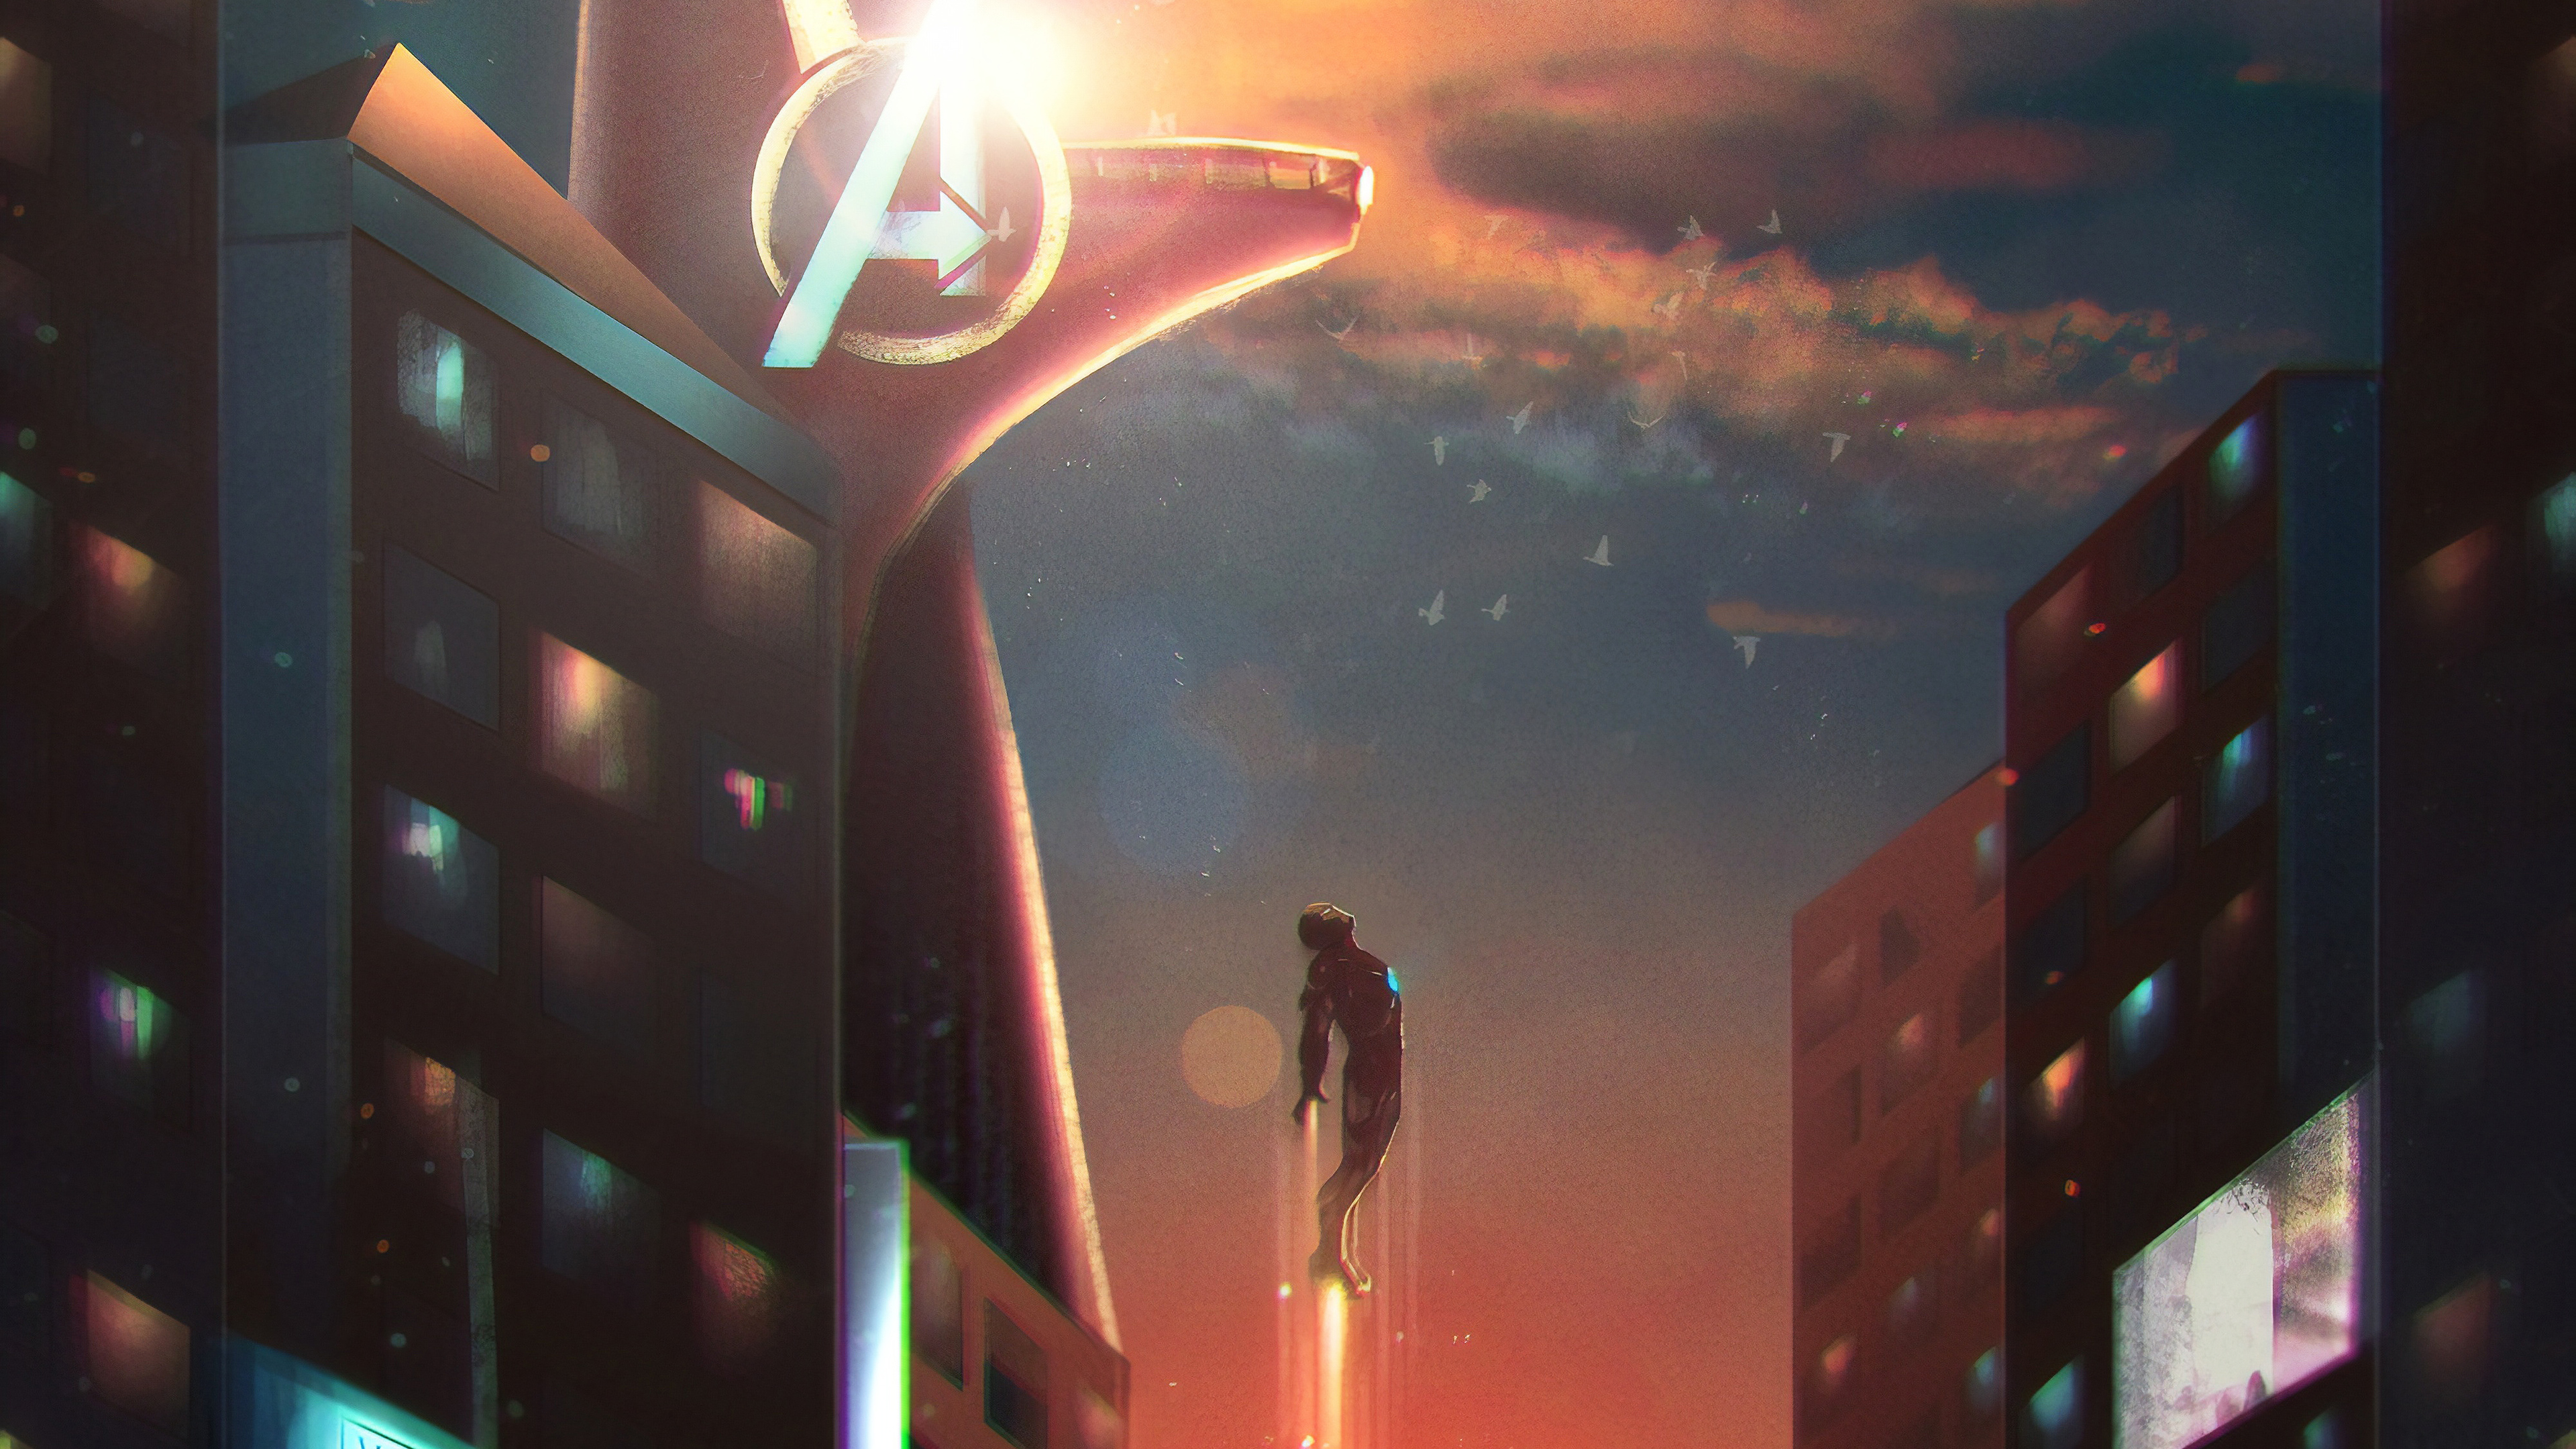 iron man stark tower 4k 1559764198 - Iron Man Stark Tower 4k - superheroes wallpapers, iron man wallpapers, hd-wallpapers, digital art wallpapers, artwork wallpapers, artstation wallpapers, artist wallpapers, 4k-wallpapers